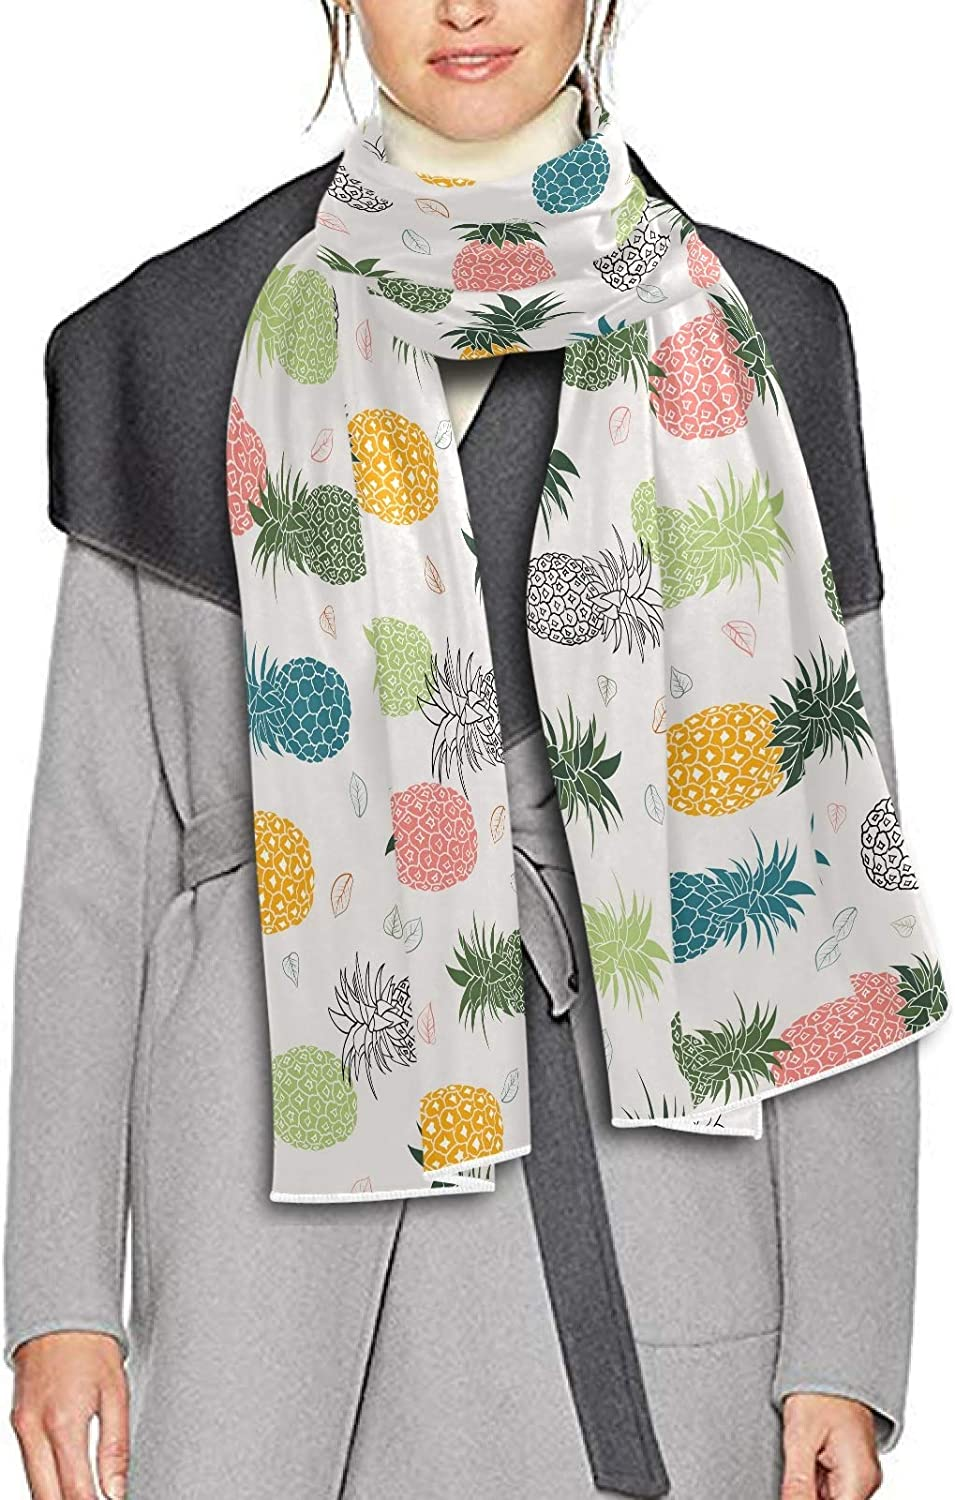 Scarf for Women and Men Pineapple Leaves Blanket Shawl Scarves Wraps Warm soft Winter Long Scarves Lightweight